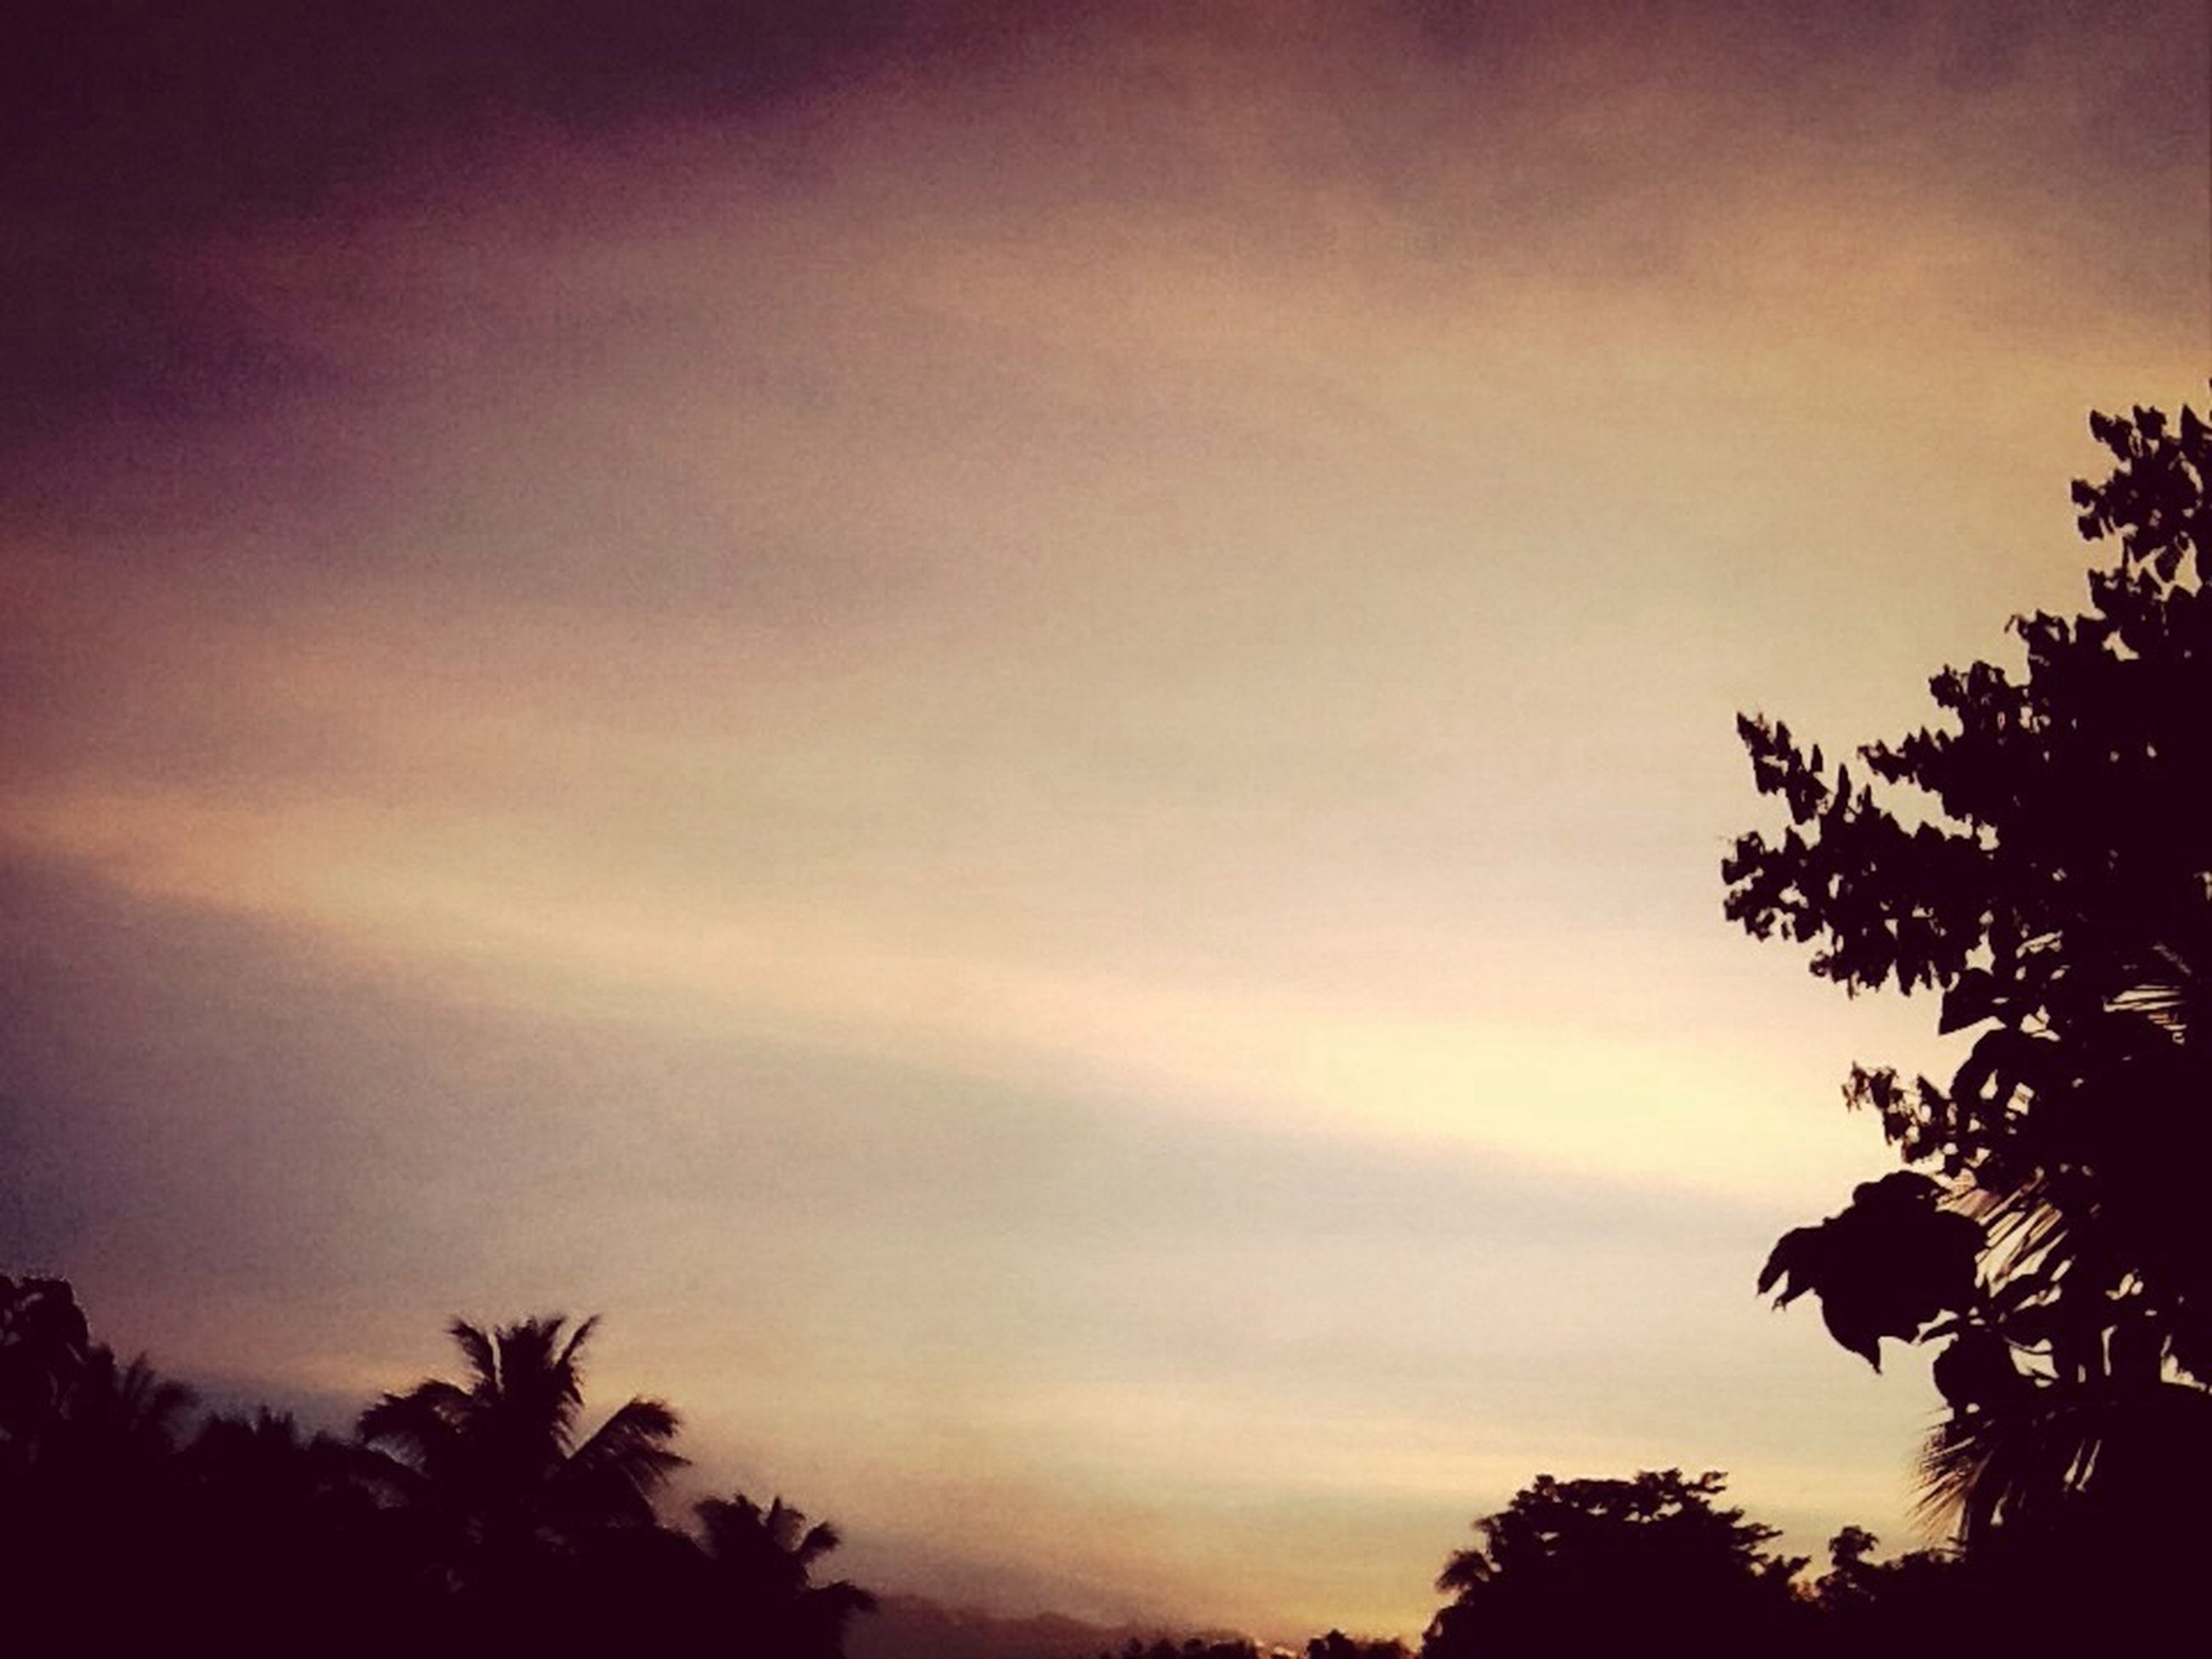 tree, silhouette, low angle view, sky, beauty in nature, palm tree, sunset, tranquility, nature, growth, scenics, tranquil scene, sun, treetop, no people, outdoors, cloud - sky, idyllic, branch, dusk